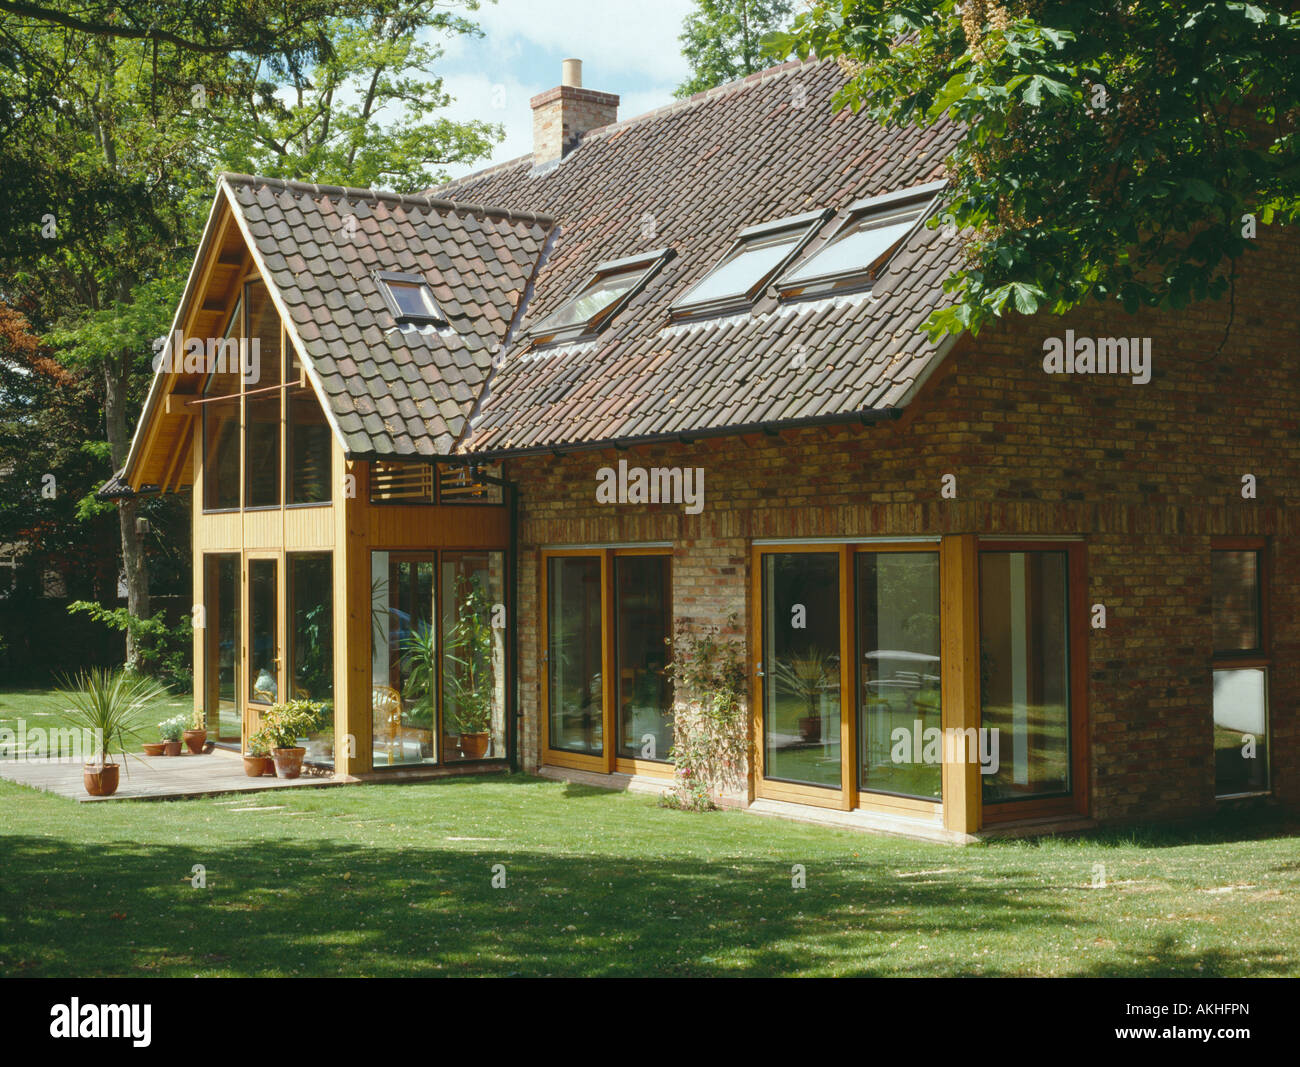 Stock photo velux windows and sliding glass doors on modern country house with reclaimed pantiles